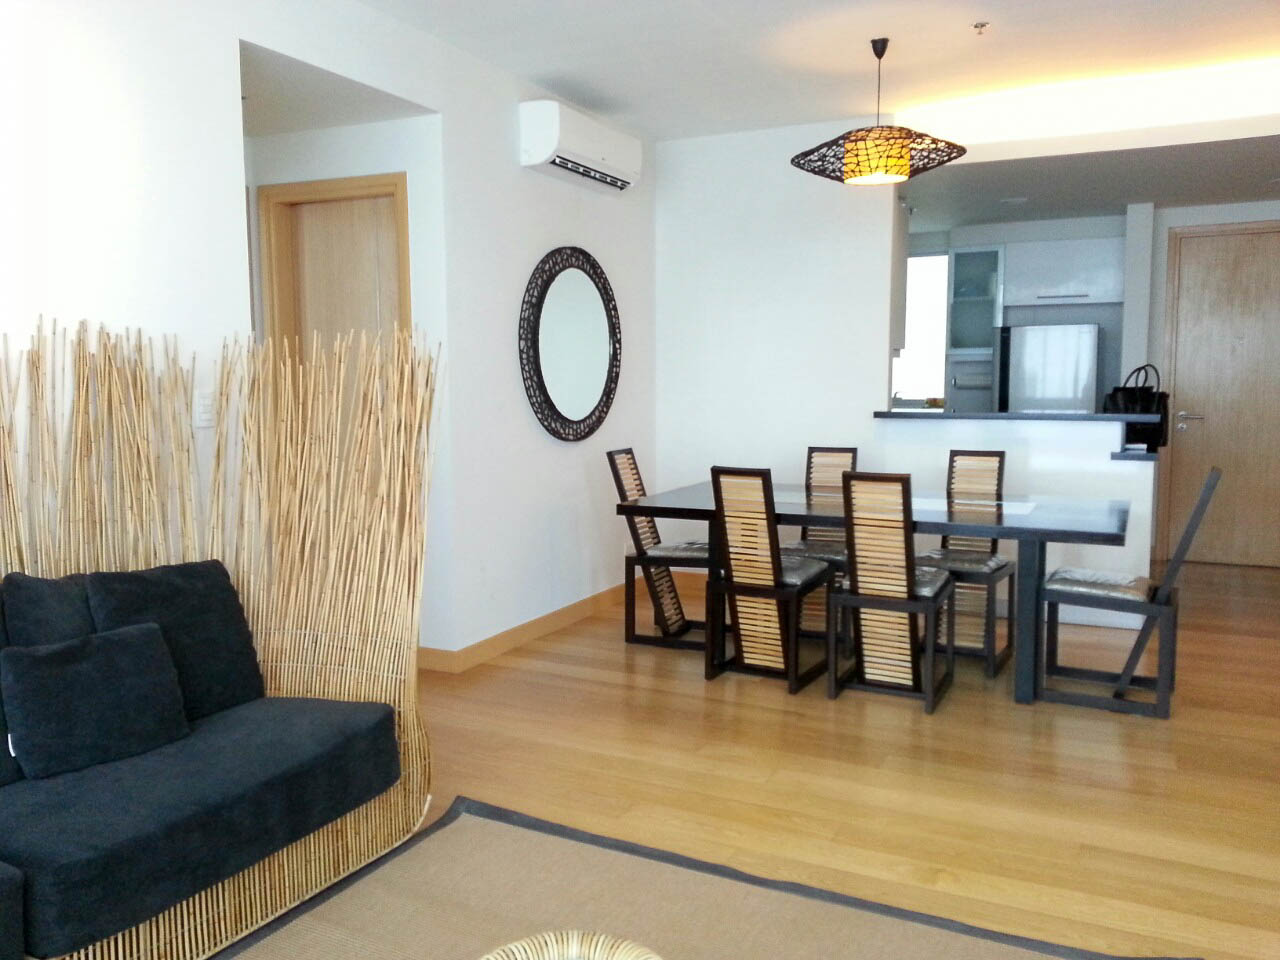 RC189 2 Bedroom Condo for Rent in 1016 Residences Cebu Business Park  Cebu Grand Realty. 2 Bedroom Condo for Rent in Cebu Business Park 1016 Residences